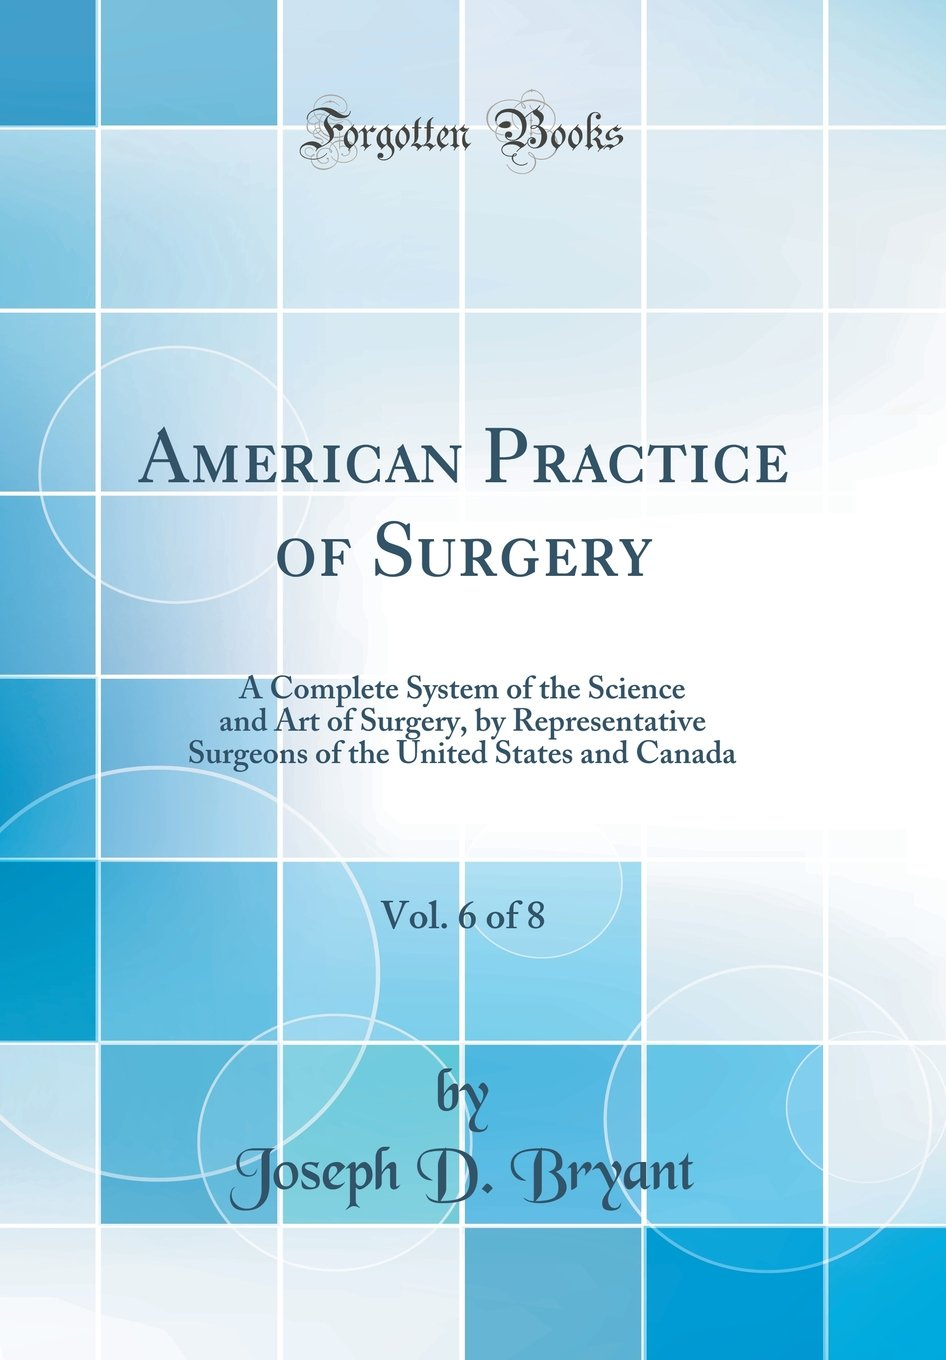 Download American Practice of Surgery, Vol. 6 of 8: A Complete System of the Science and Art of Surgery, by Representative Surgeons of the United States and Canada (Classic Reprint) ebook